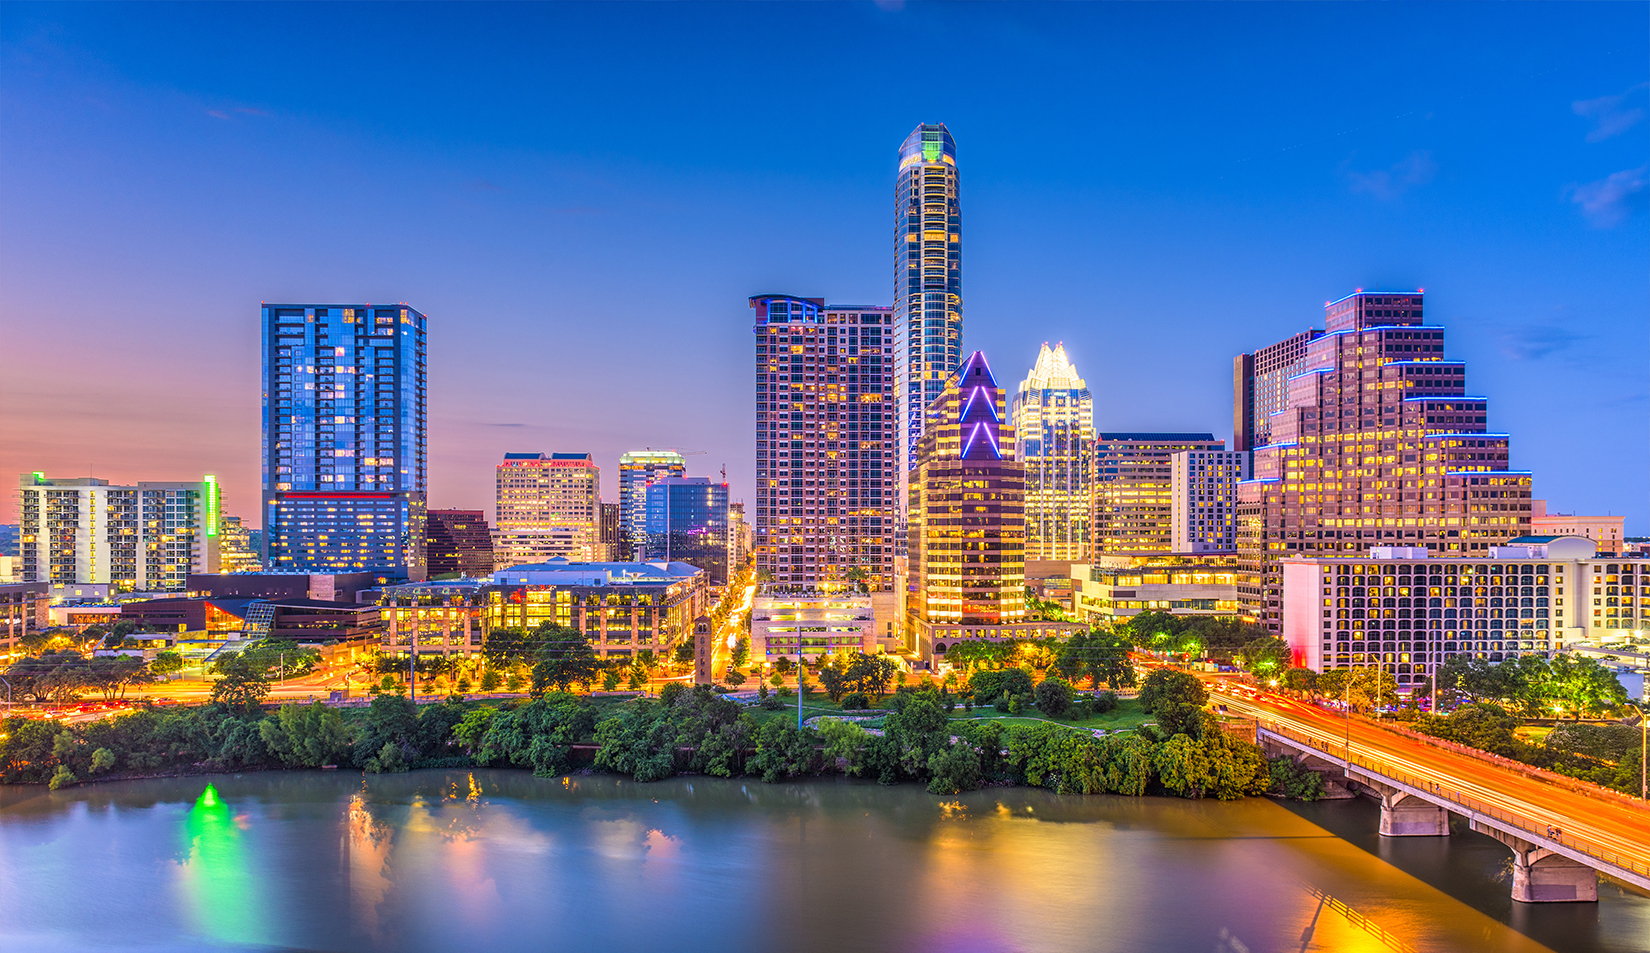 View of Austin's glassy and fast-growing skyline